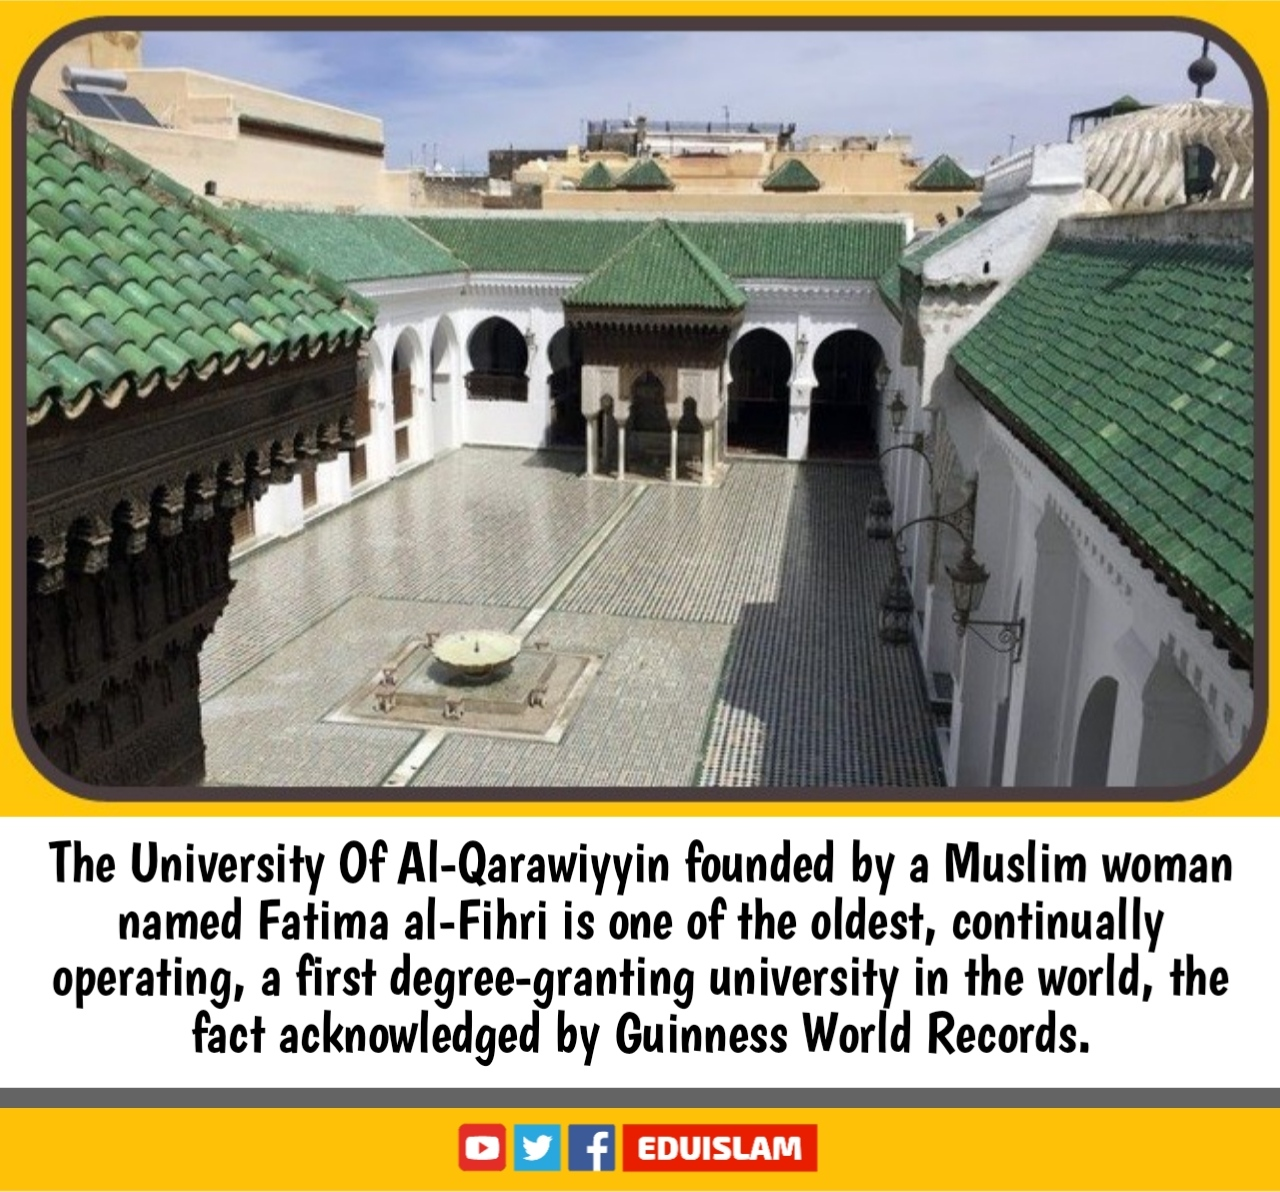 The University of Al-Qarawiyyin, First world university founded by Fatima al-Firhi, Muslim woman founded the world's first university, the oldest university, oldest library, Fez, Morocco